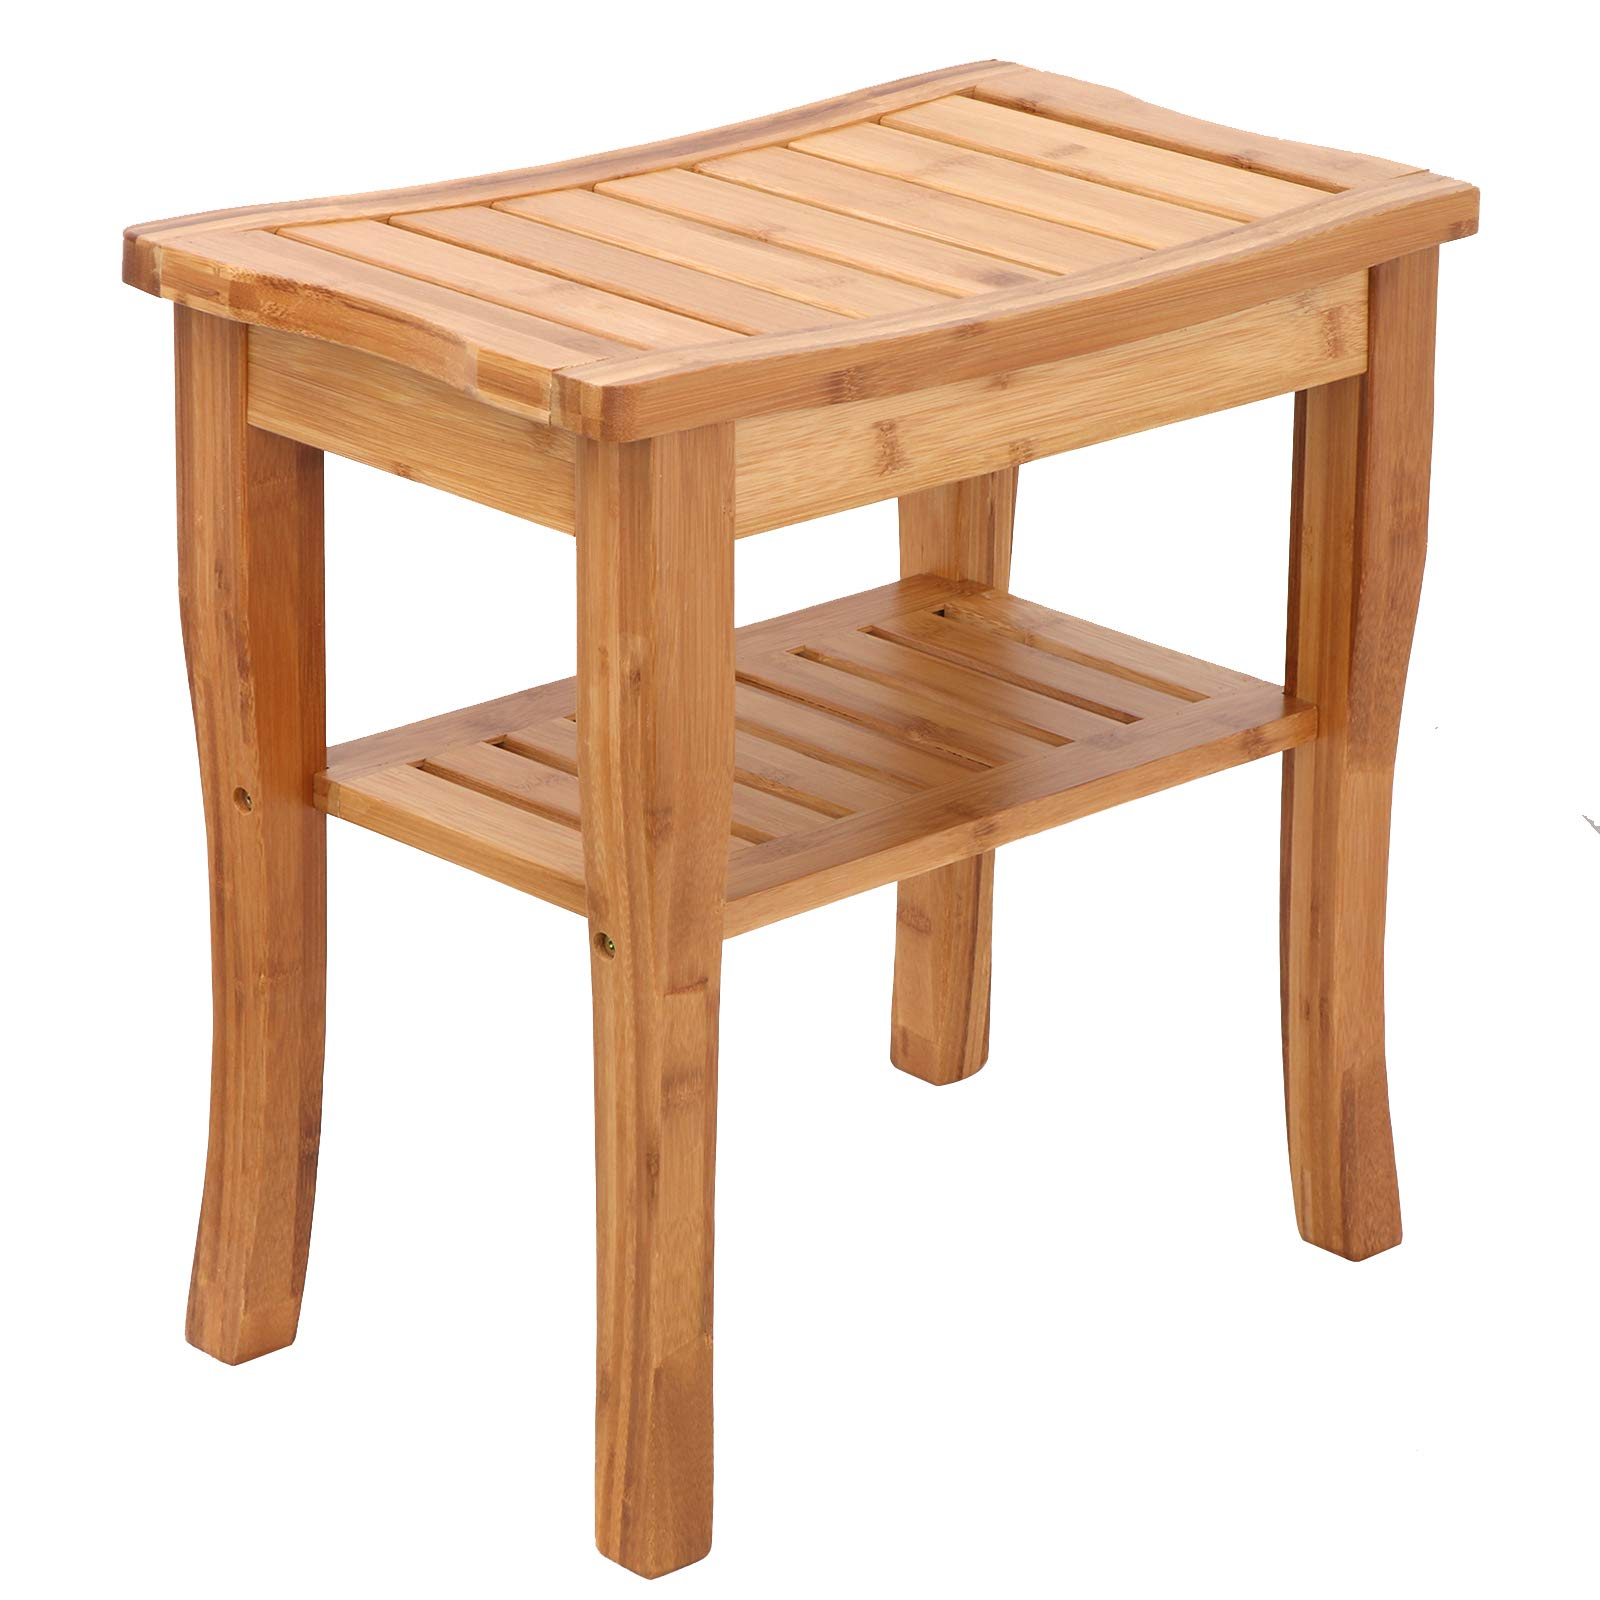 ZENY Bamboo Shower Bath Beach Seat with Storage Shelf Spa Bathing Beach Chair Stool Organizer